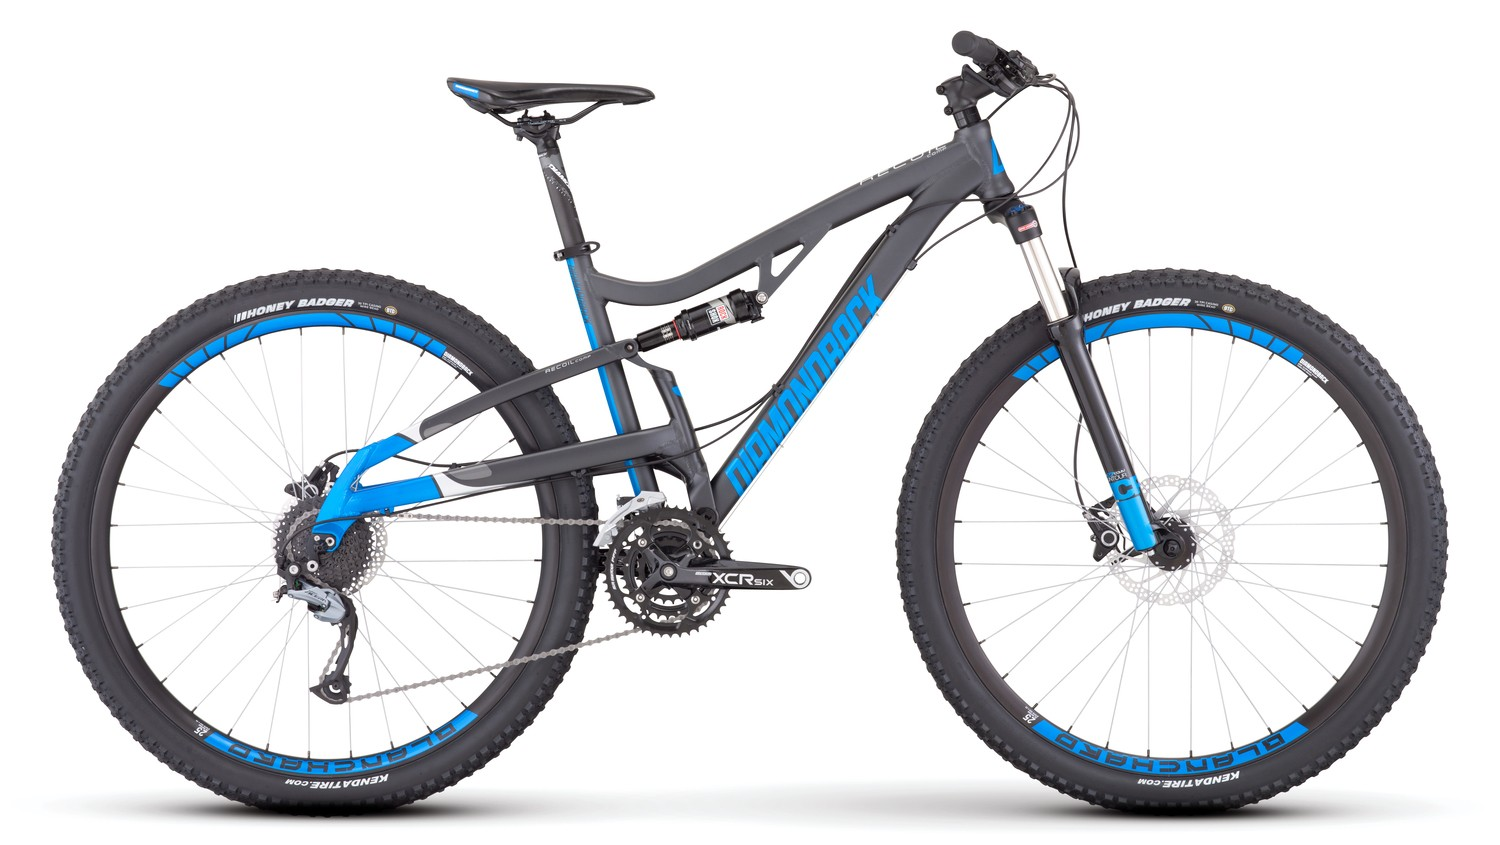 Best Full Suspension Mountain Bike >> Buyer S Guide Budget Full Suspension Mountain Bikes Singletracks